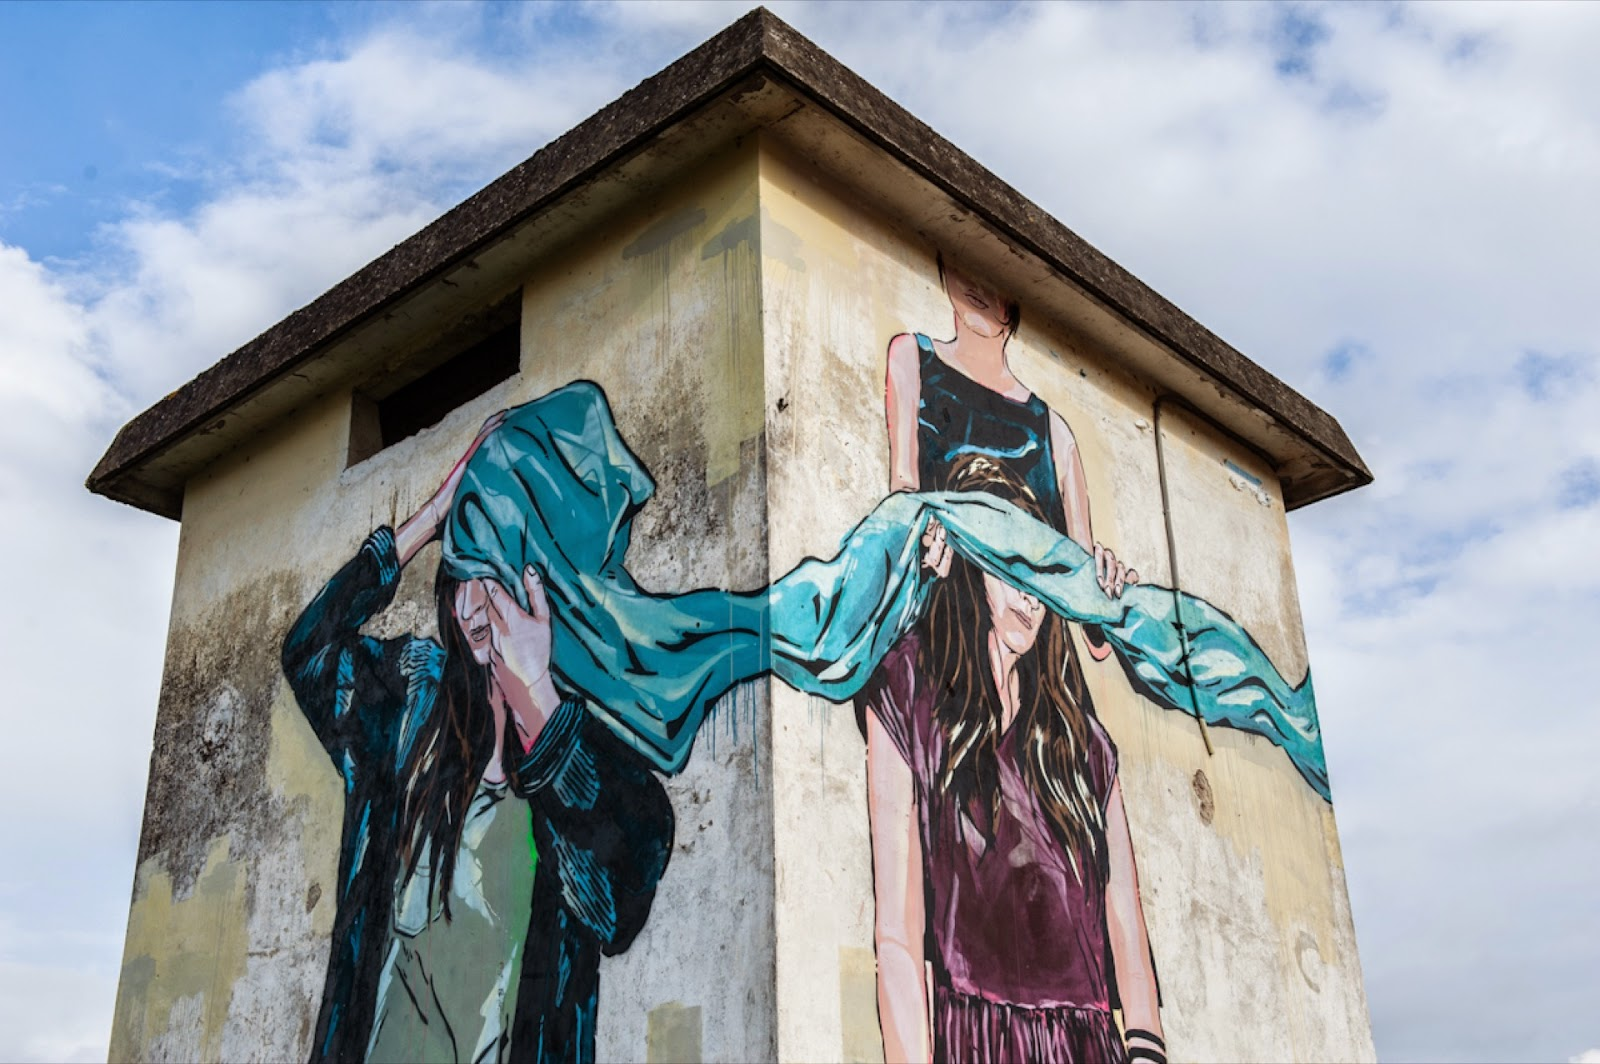 We continue our ongoing coverage of Memorie Urbane '15 with a brand new mural by the French-Austrian duo and couple Jana & Js.